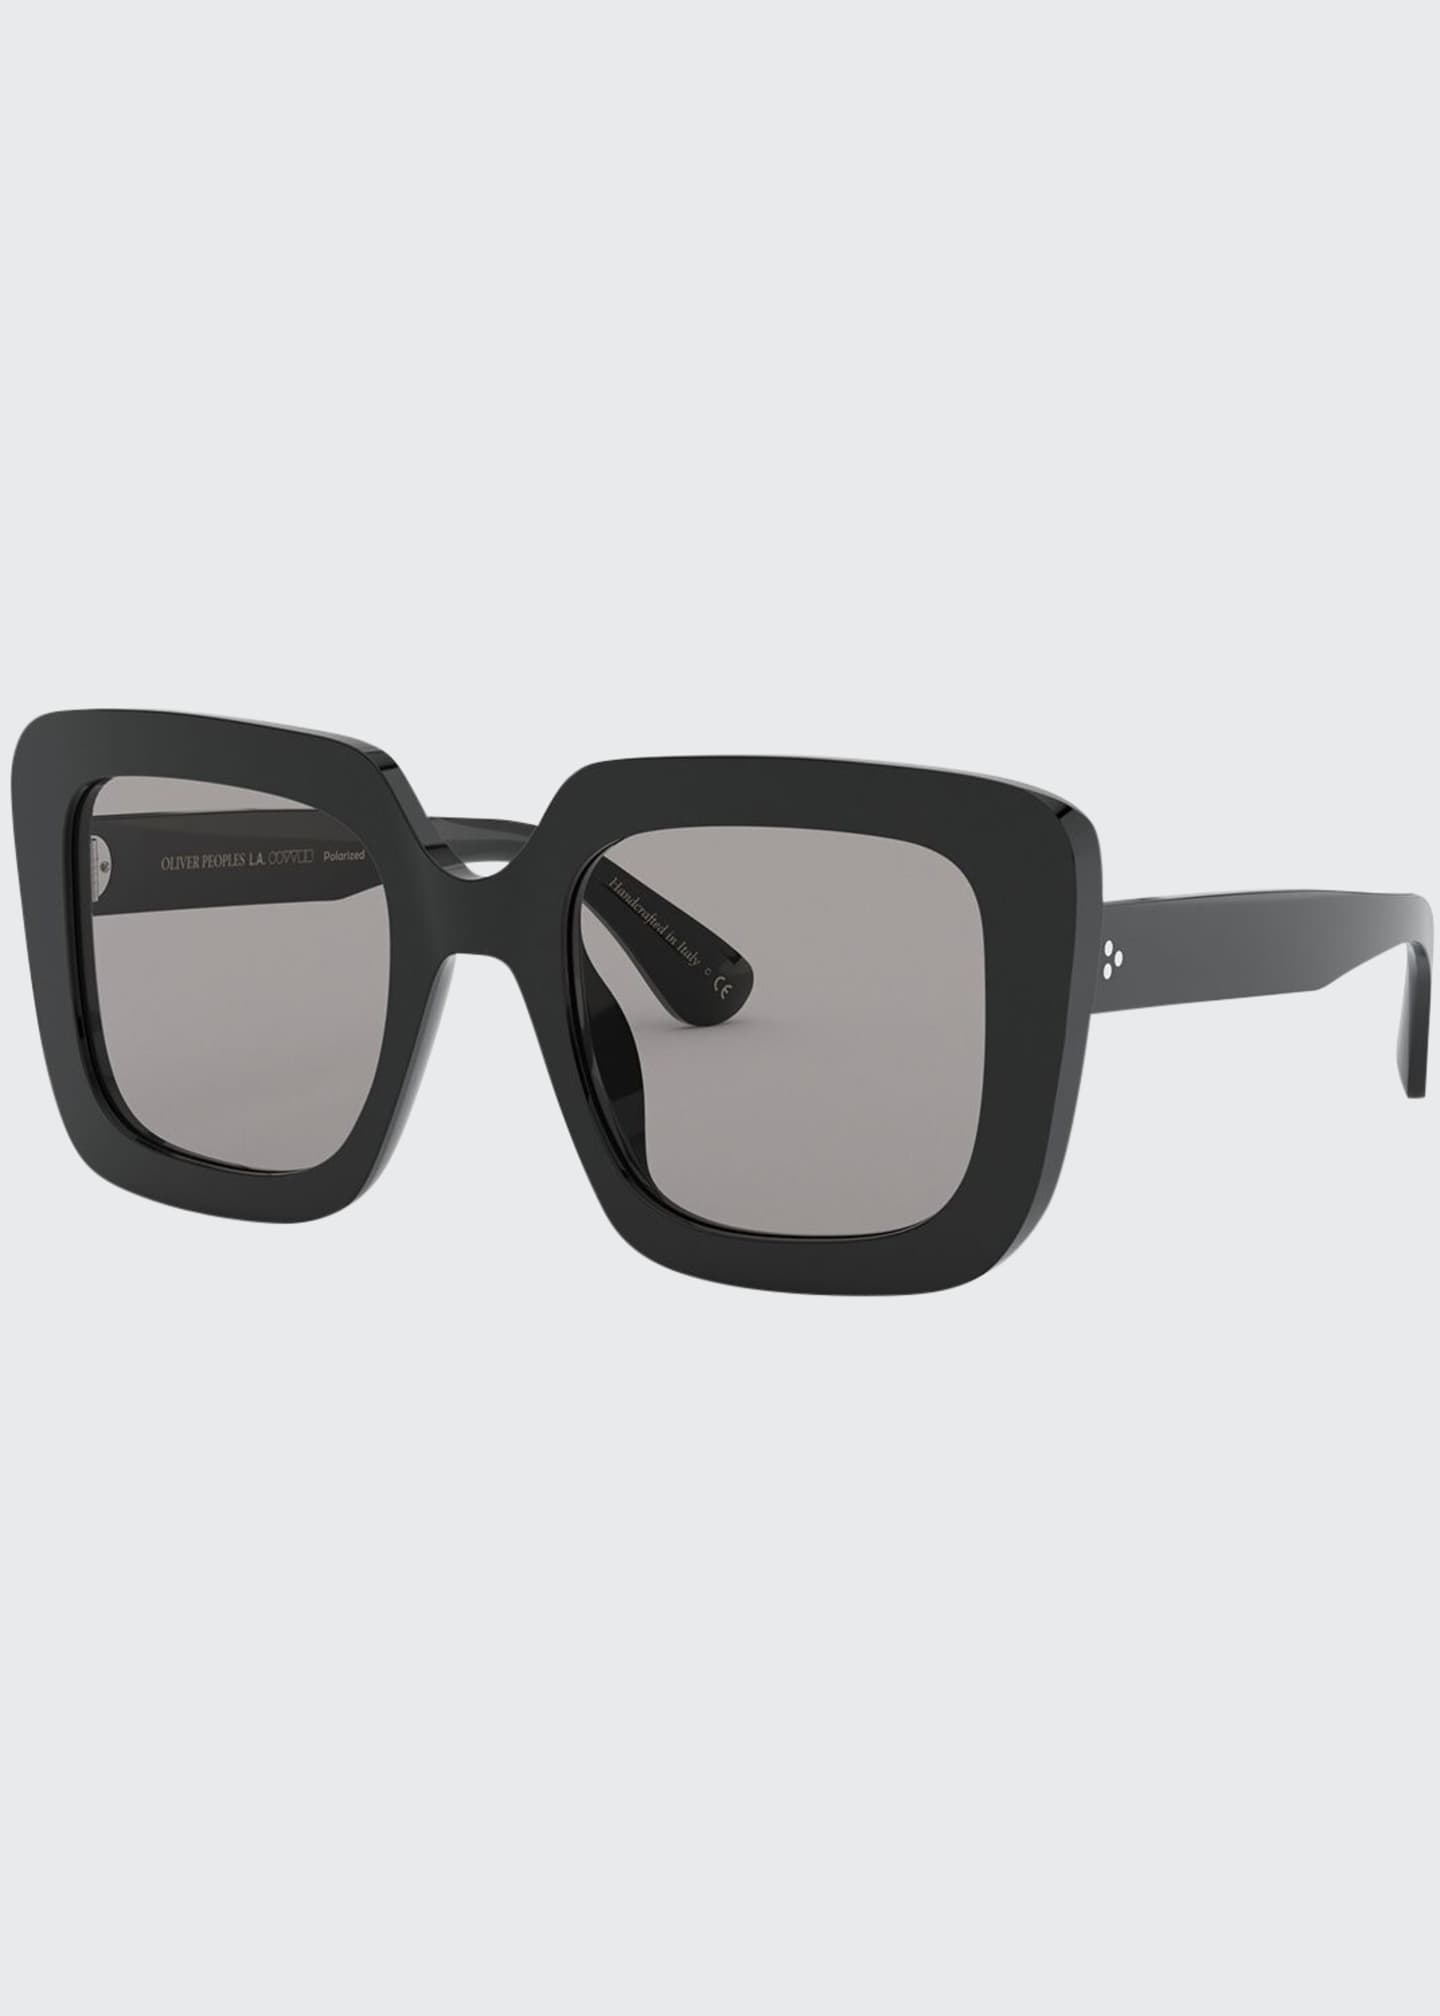 Franca Square Acetate Sunglasses